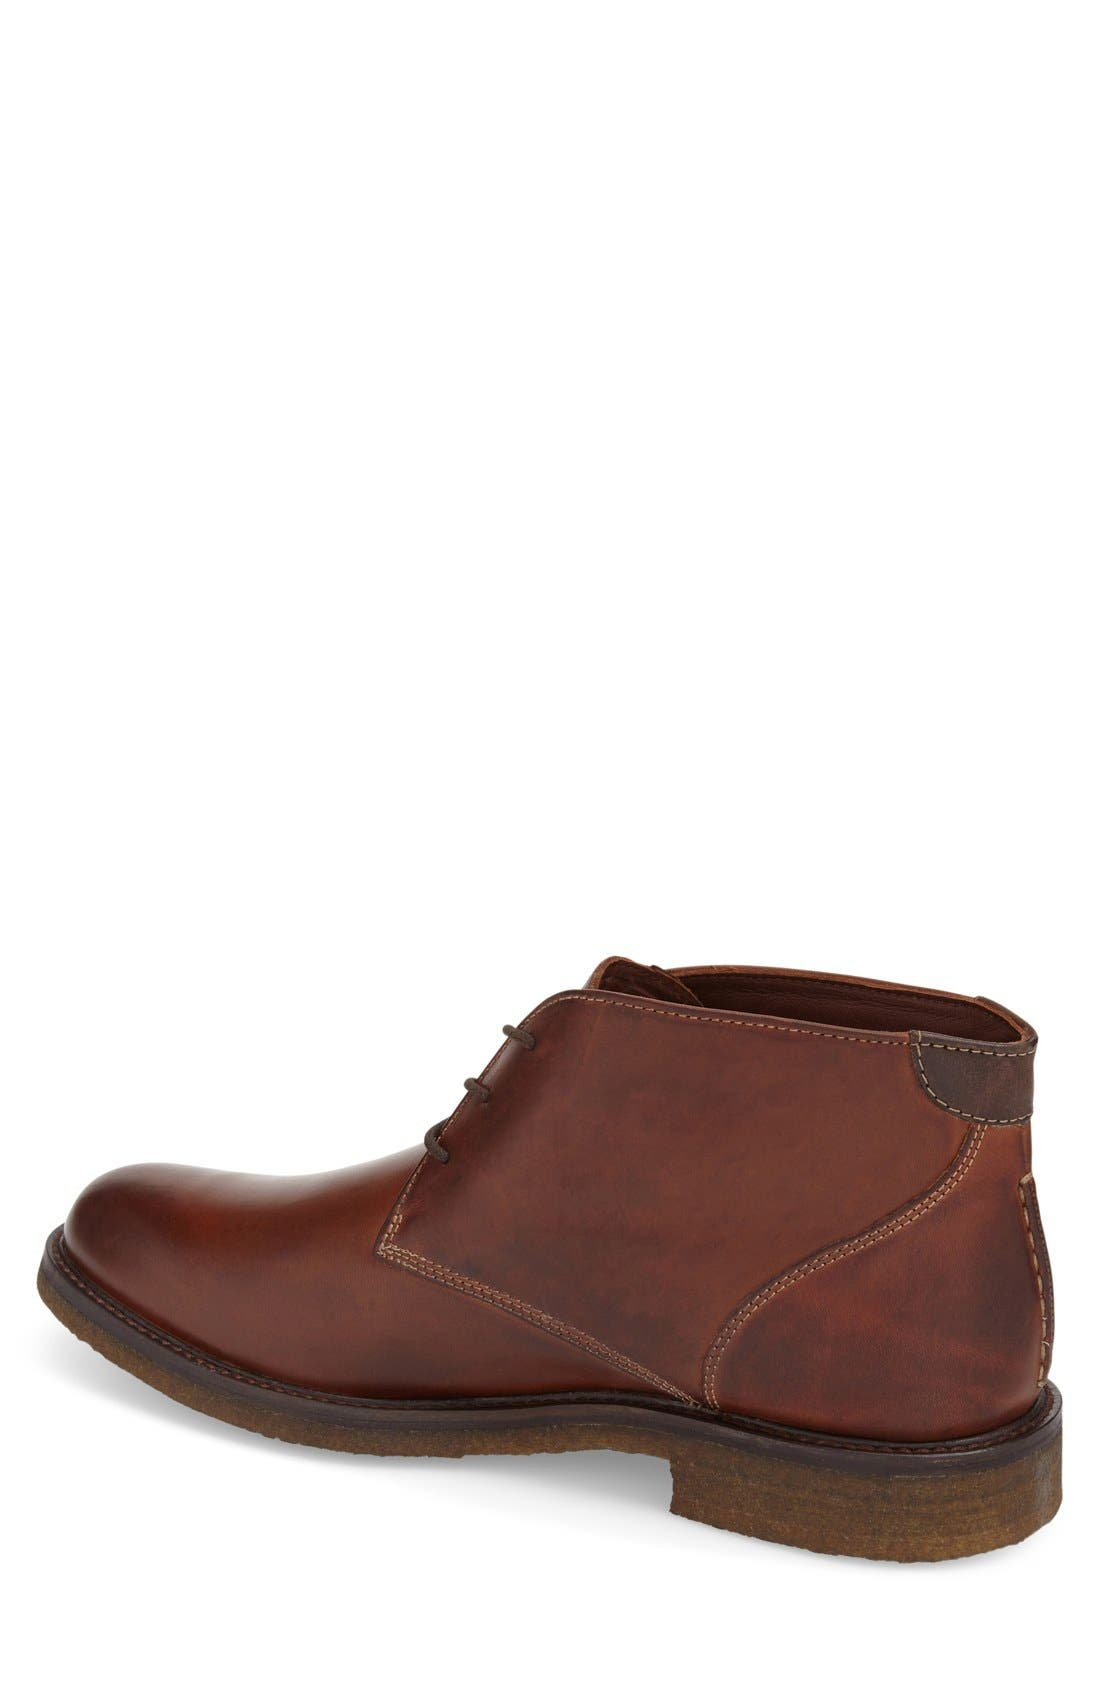 'Copeland' Suede Chukka Boot,                             Alternate thumbnail 13, color,